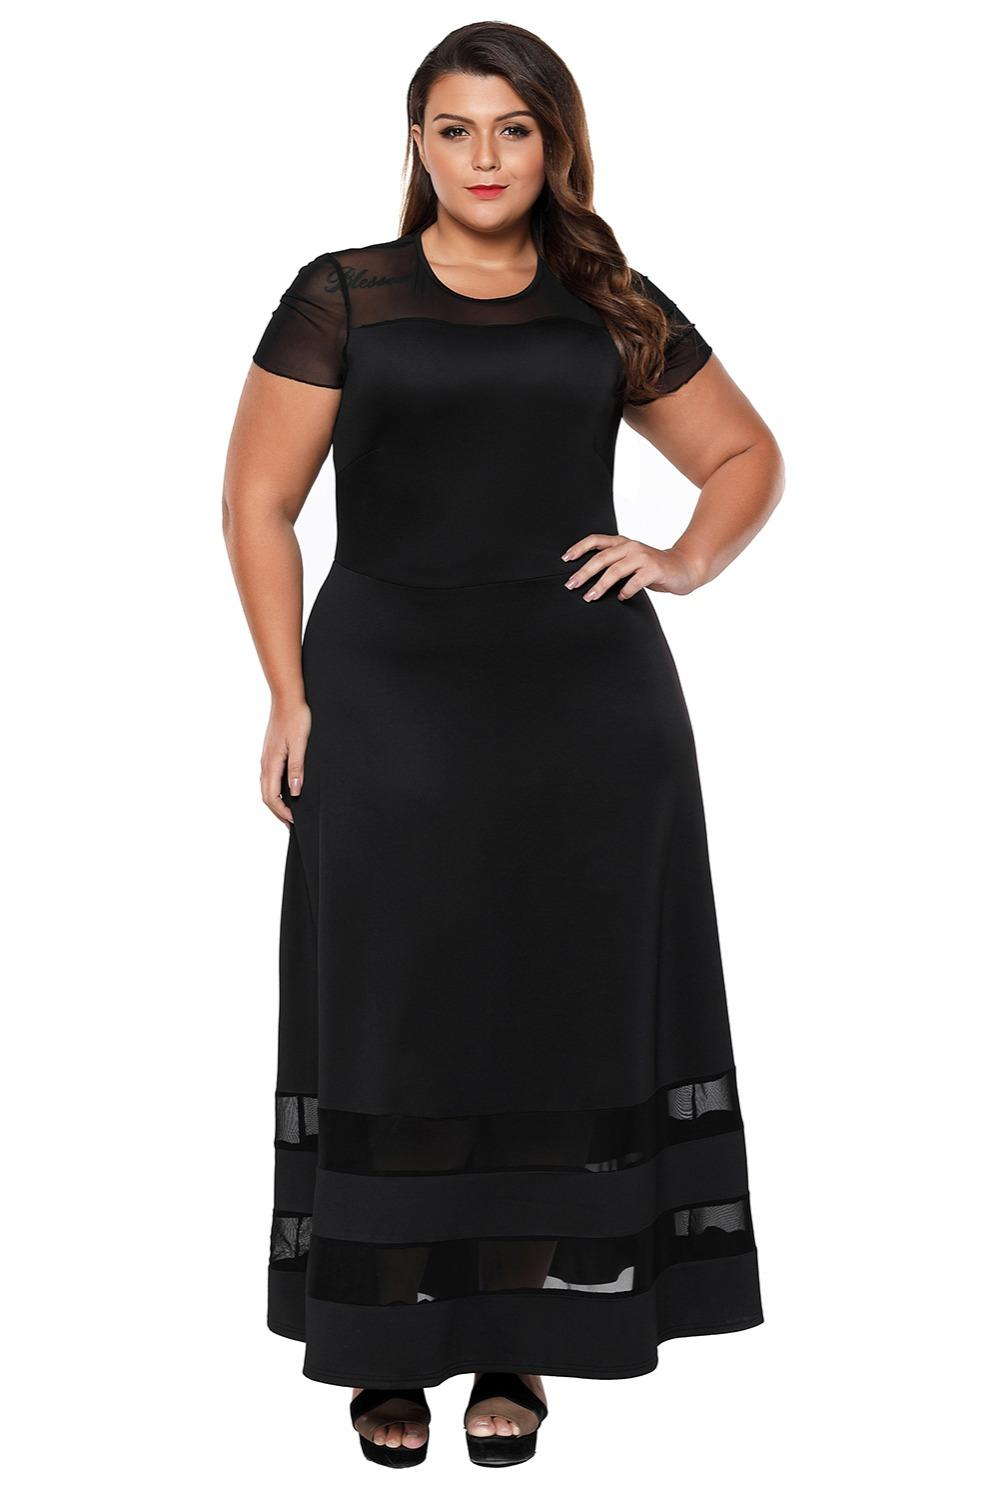 98217ae71b77b New Summer Plus Size Maxi Dress Short Sleeve Black Sexy Long Office Ladies  Dress O Neck Hollow Out Party Dress 4xl Lc61961 Long Dress For Women Womens  Short ...